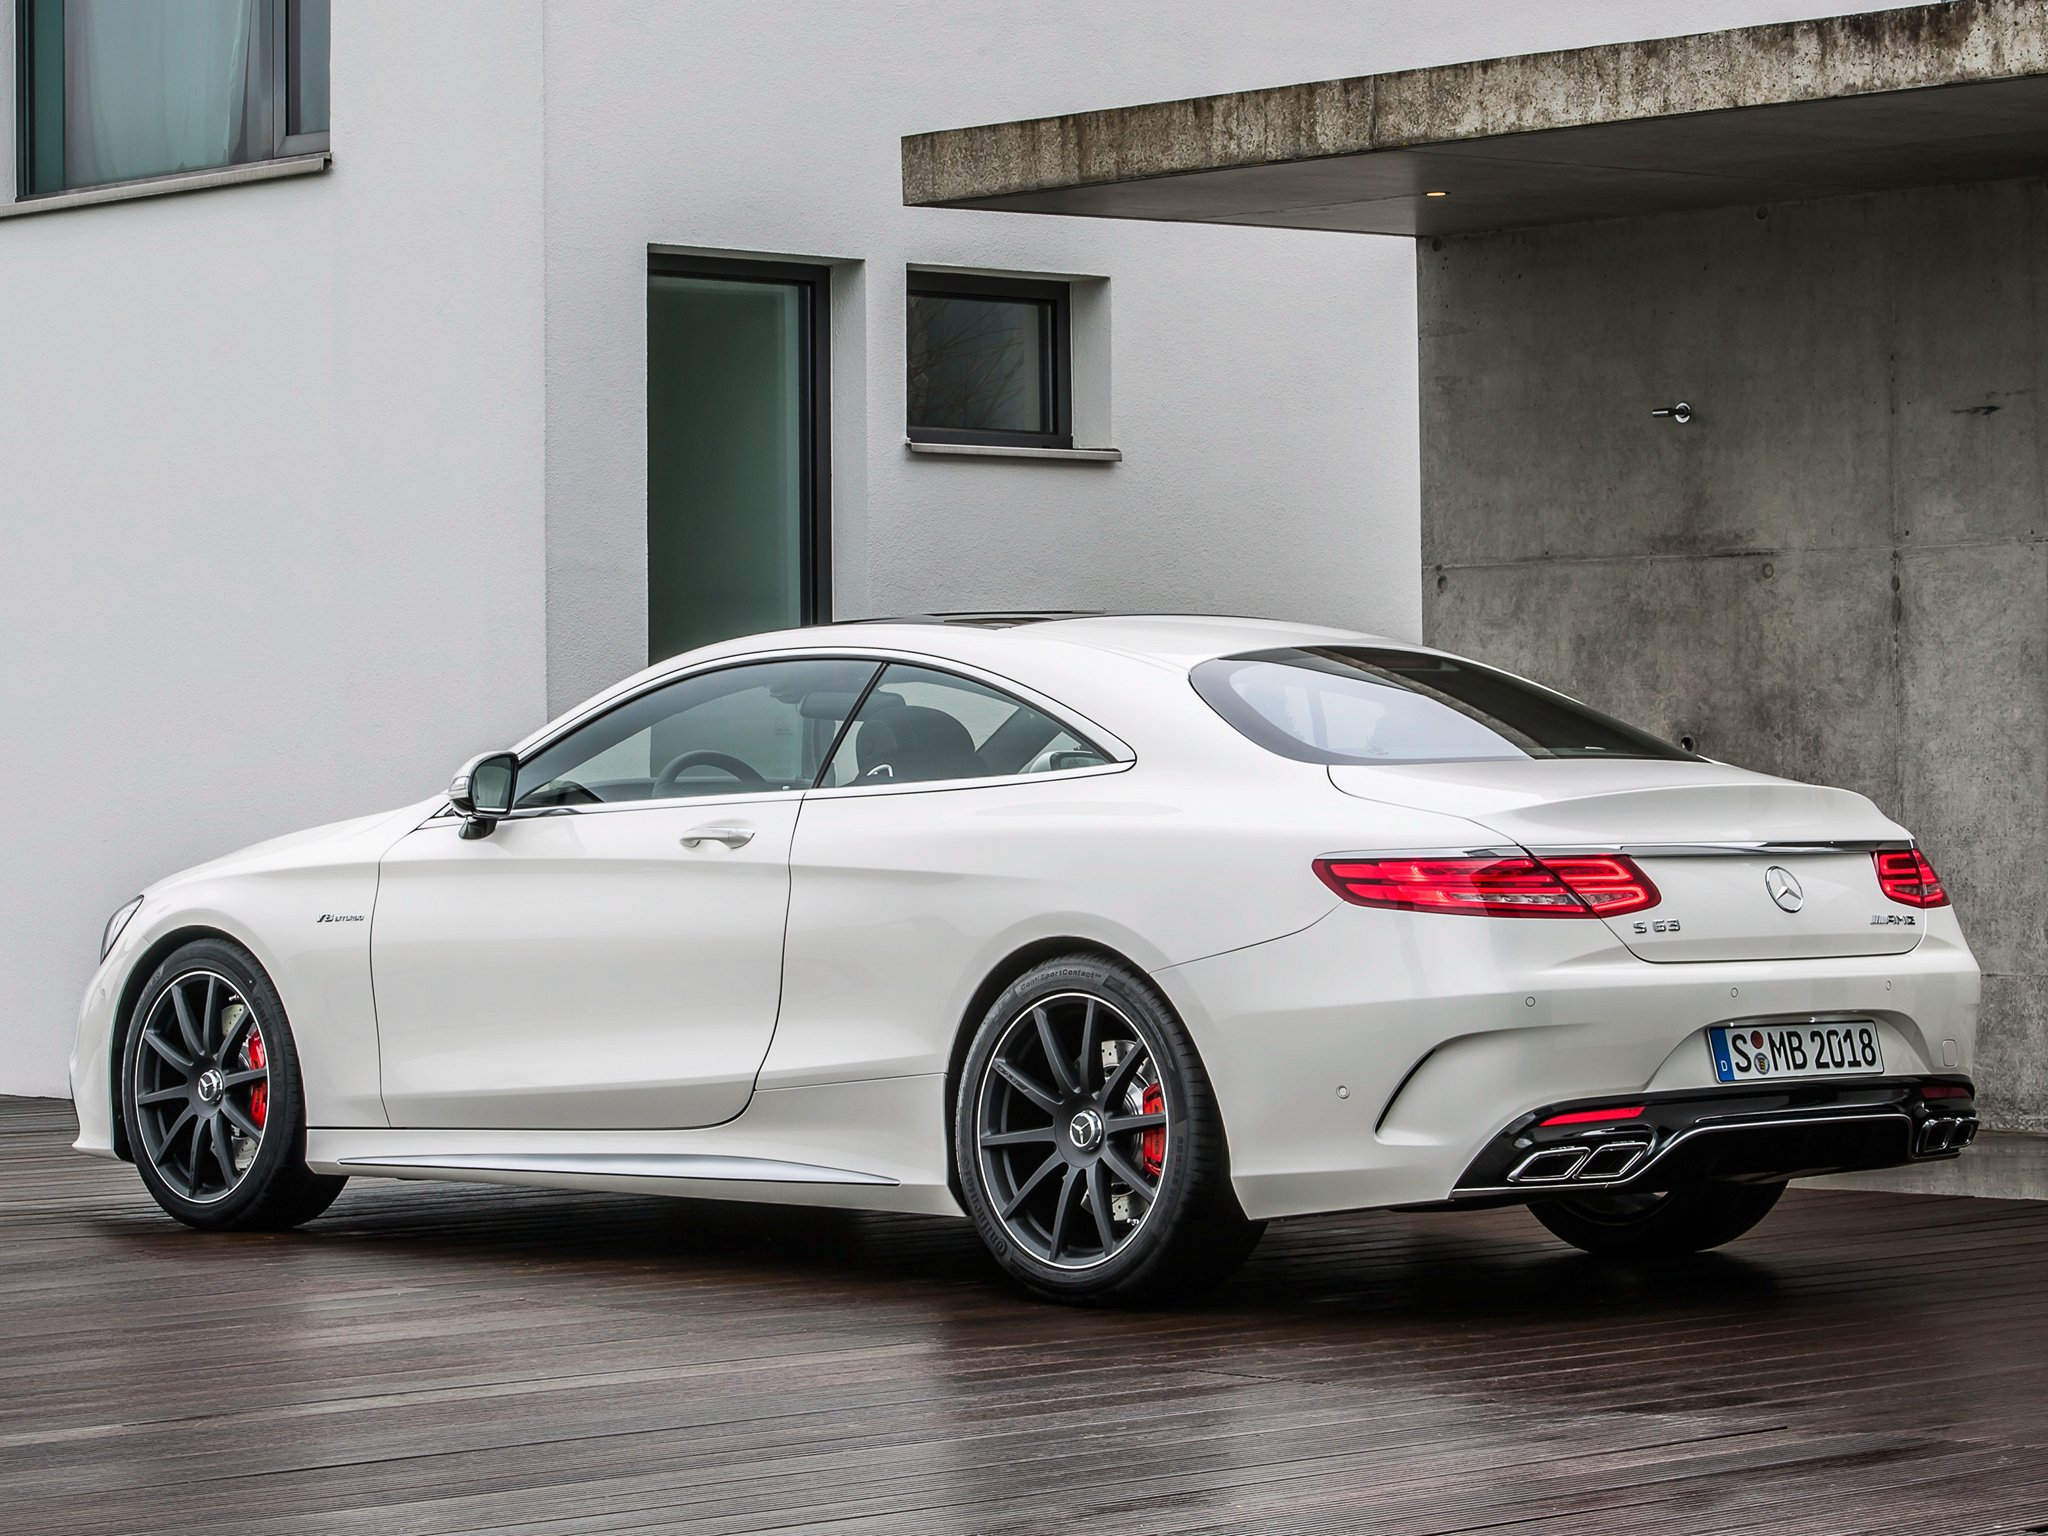 2014 mercedes benz s63 amg coupe c217 w wallpaper for 2014 mercedes benz s63 amg for sale